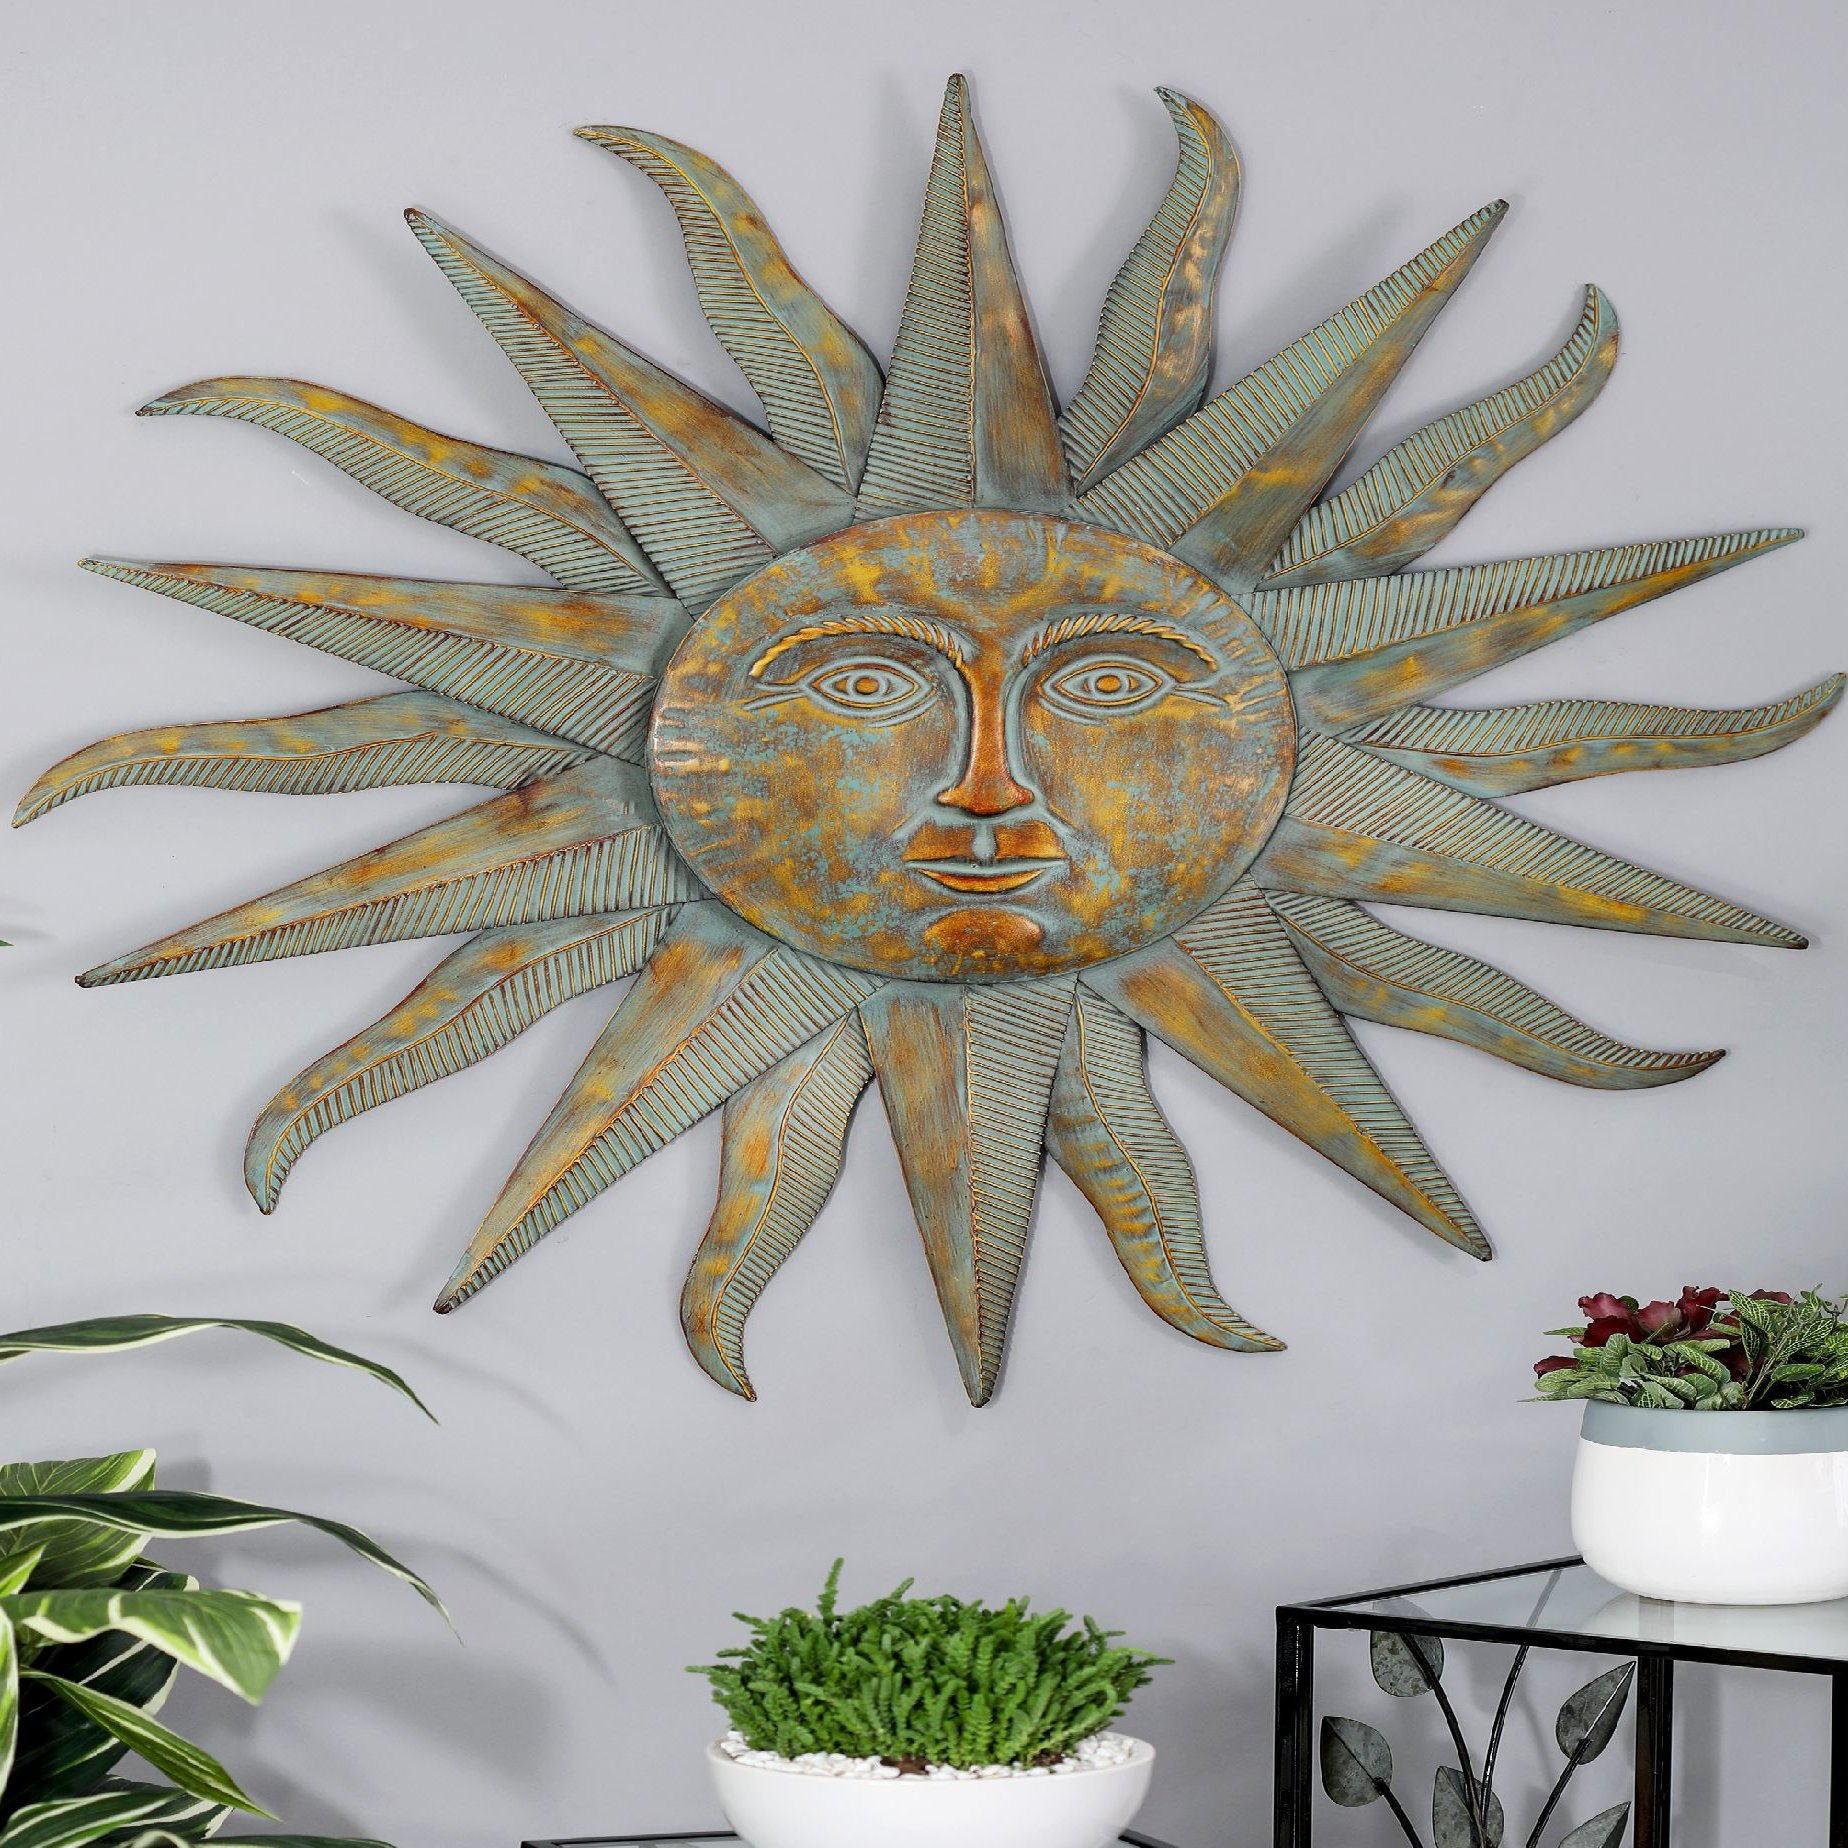 Well Known Recycled Moon And Sun Wall Decor In Bloomsbury Market Modern Sun Inspired Wall Decor & Reviews (View 20 of 20)